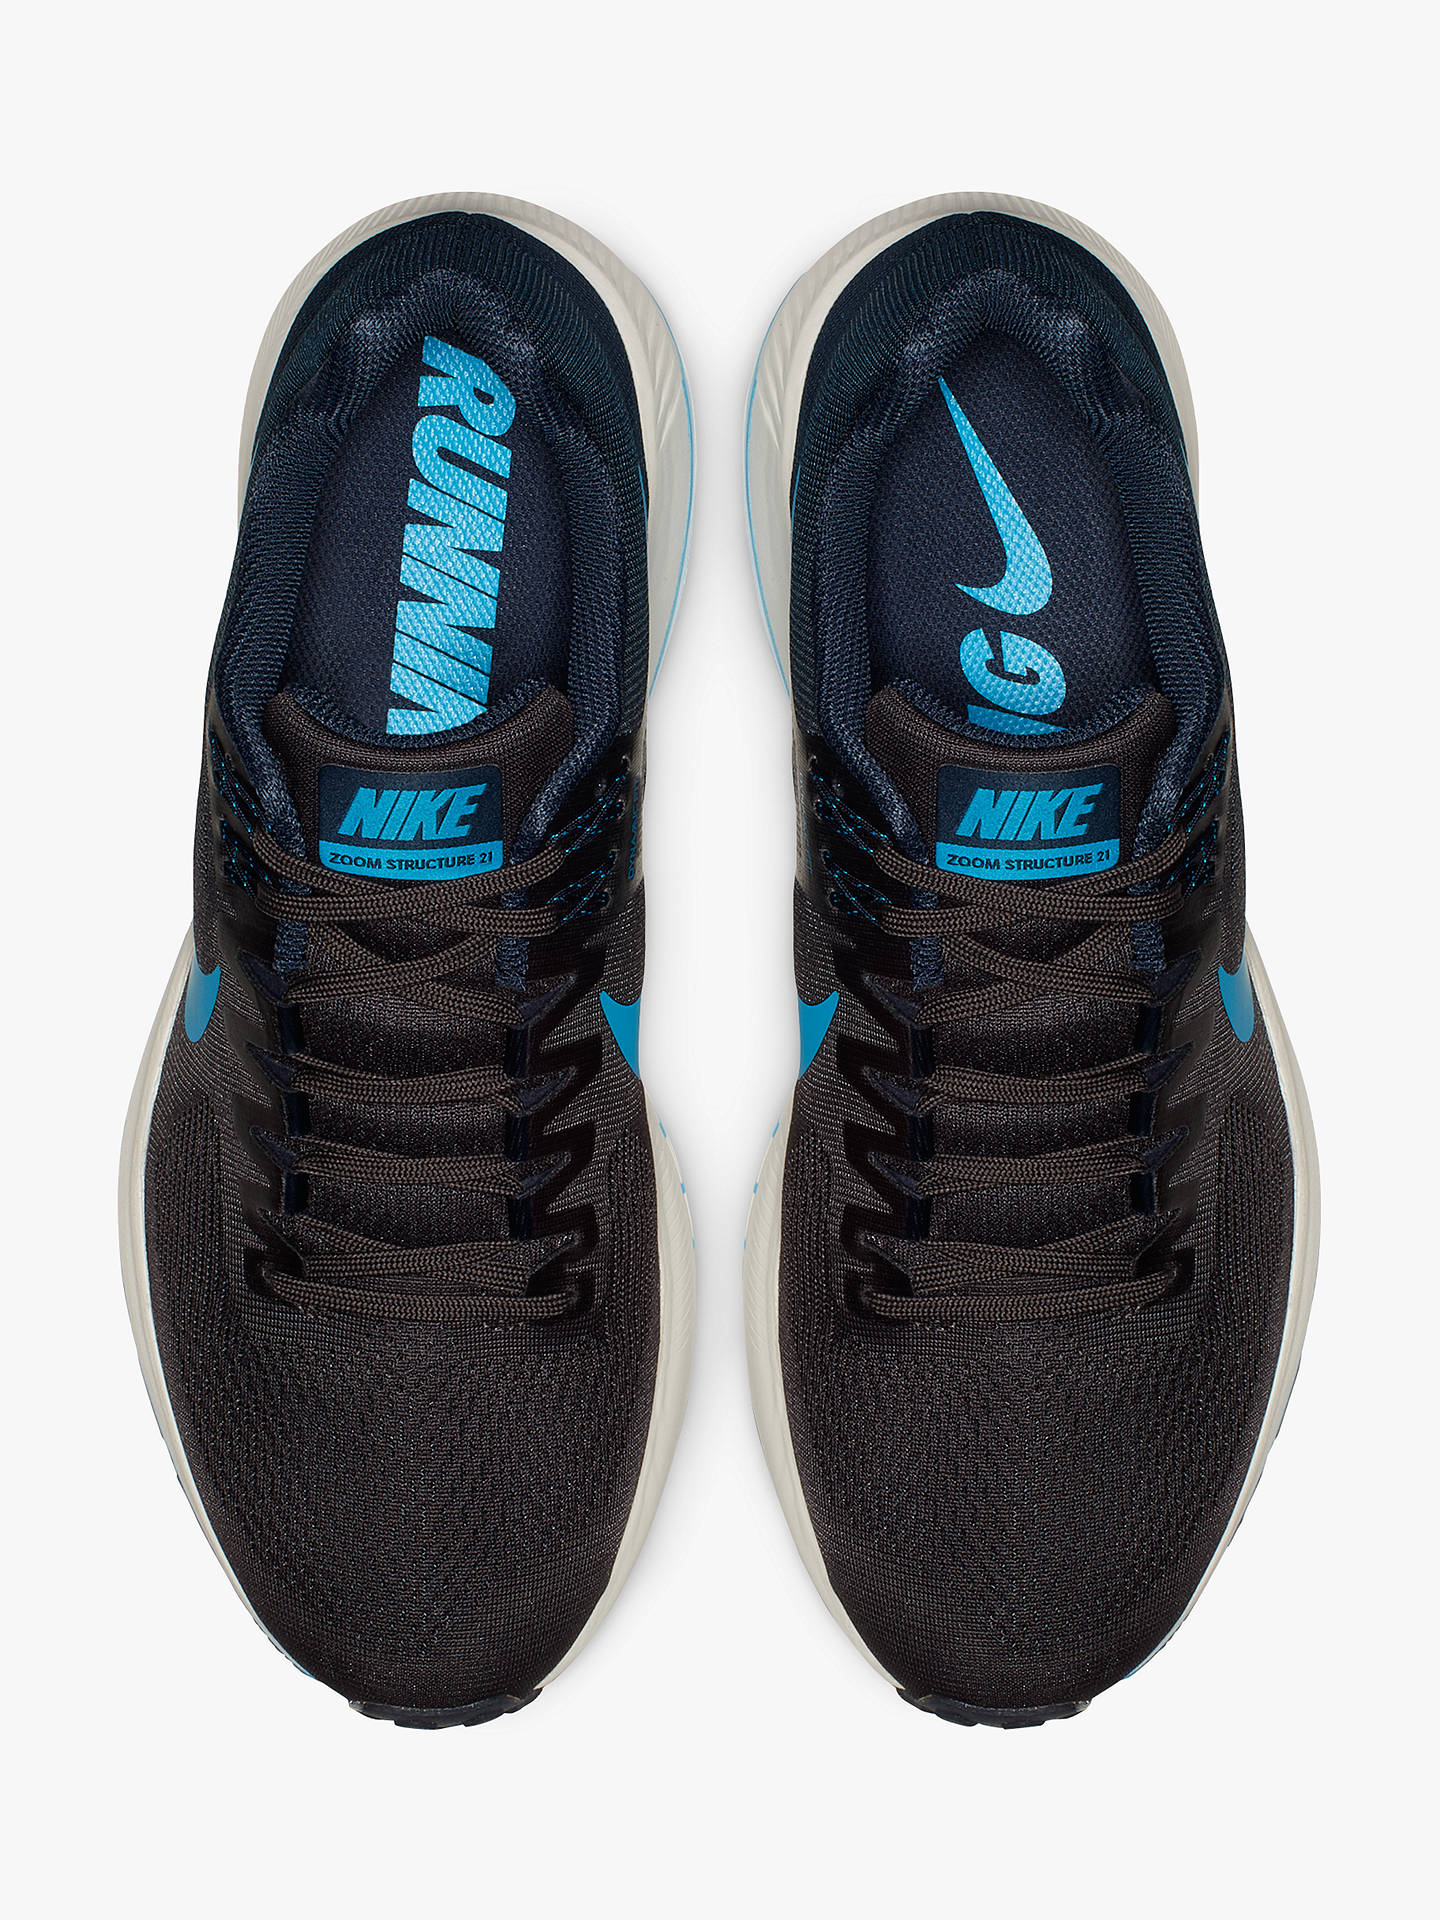 9d8e56e4651 ... Buy Nike Air Zoom Structure 21 Men s Running Shoes